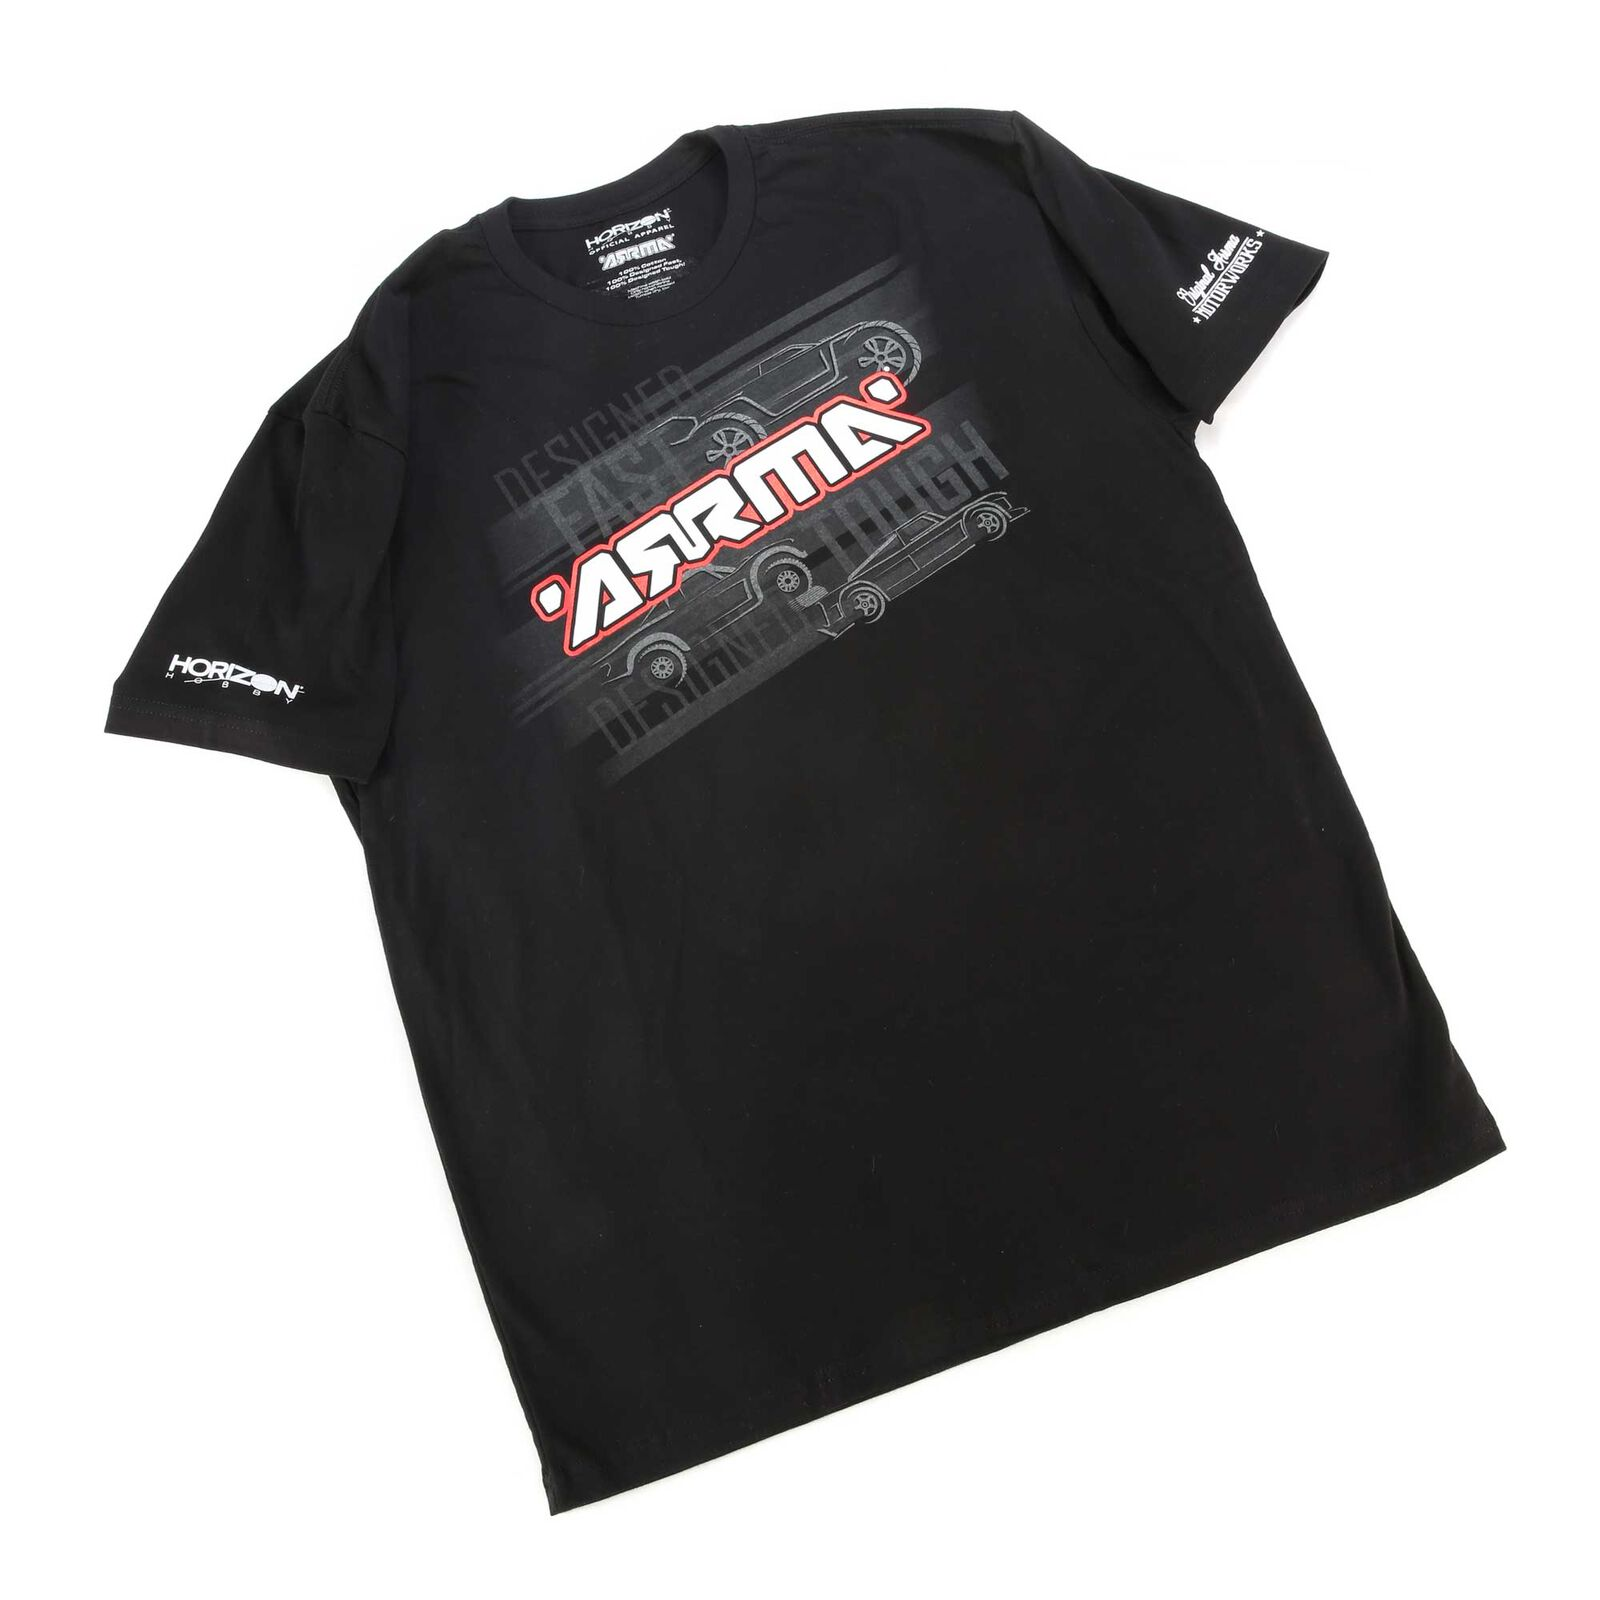 Zoom T-Shirt, Large